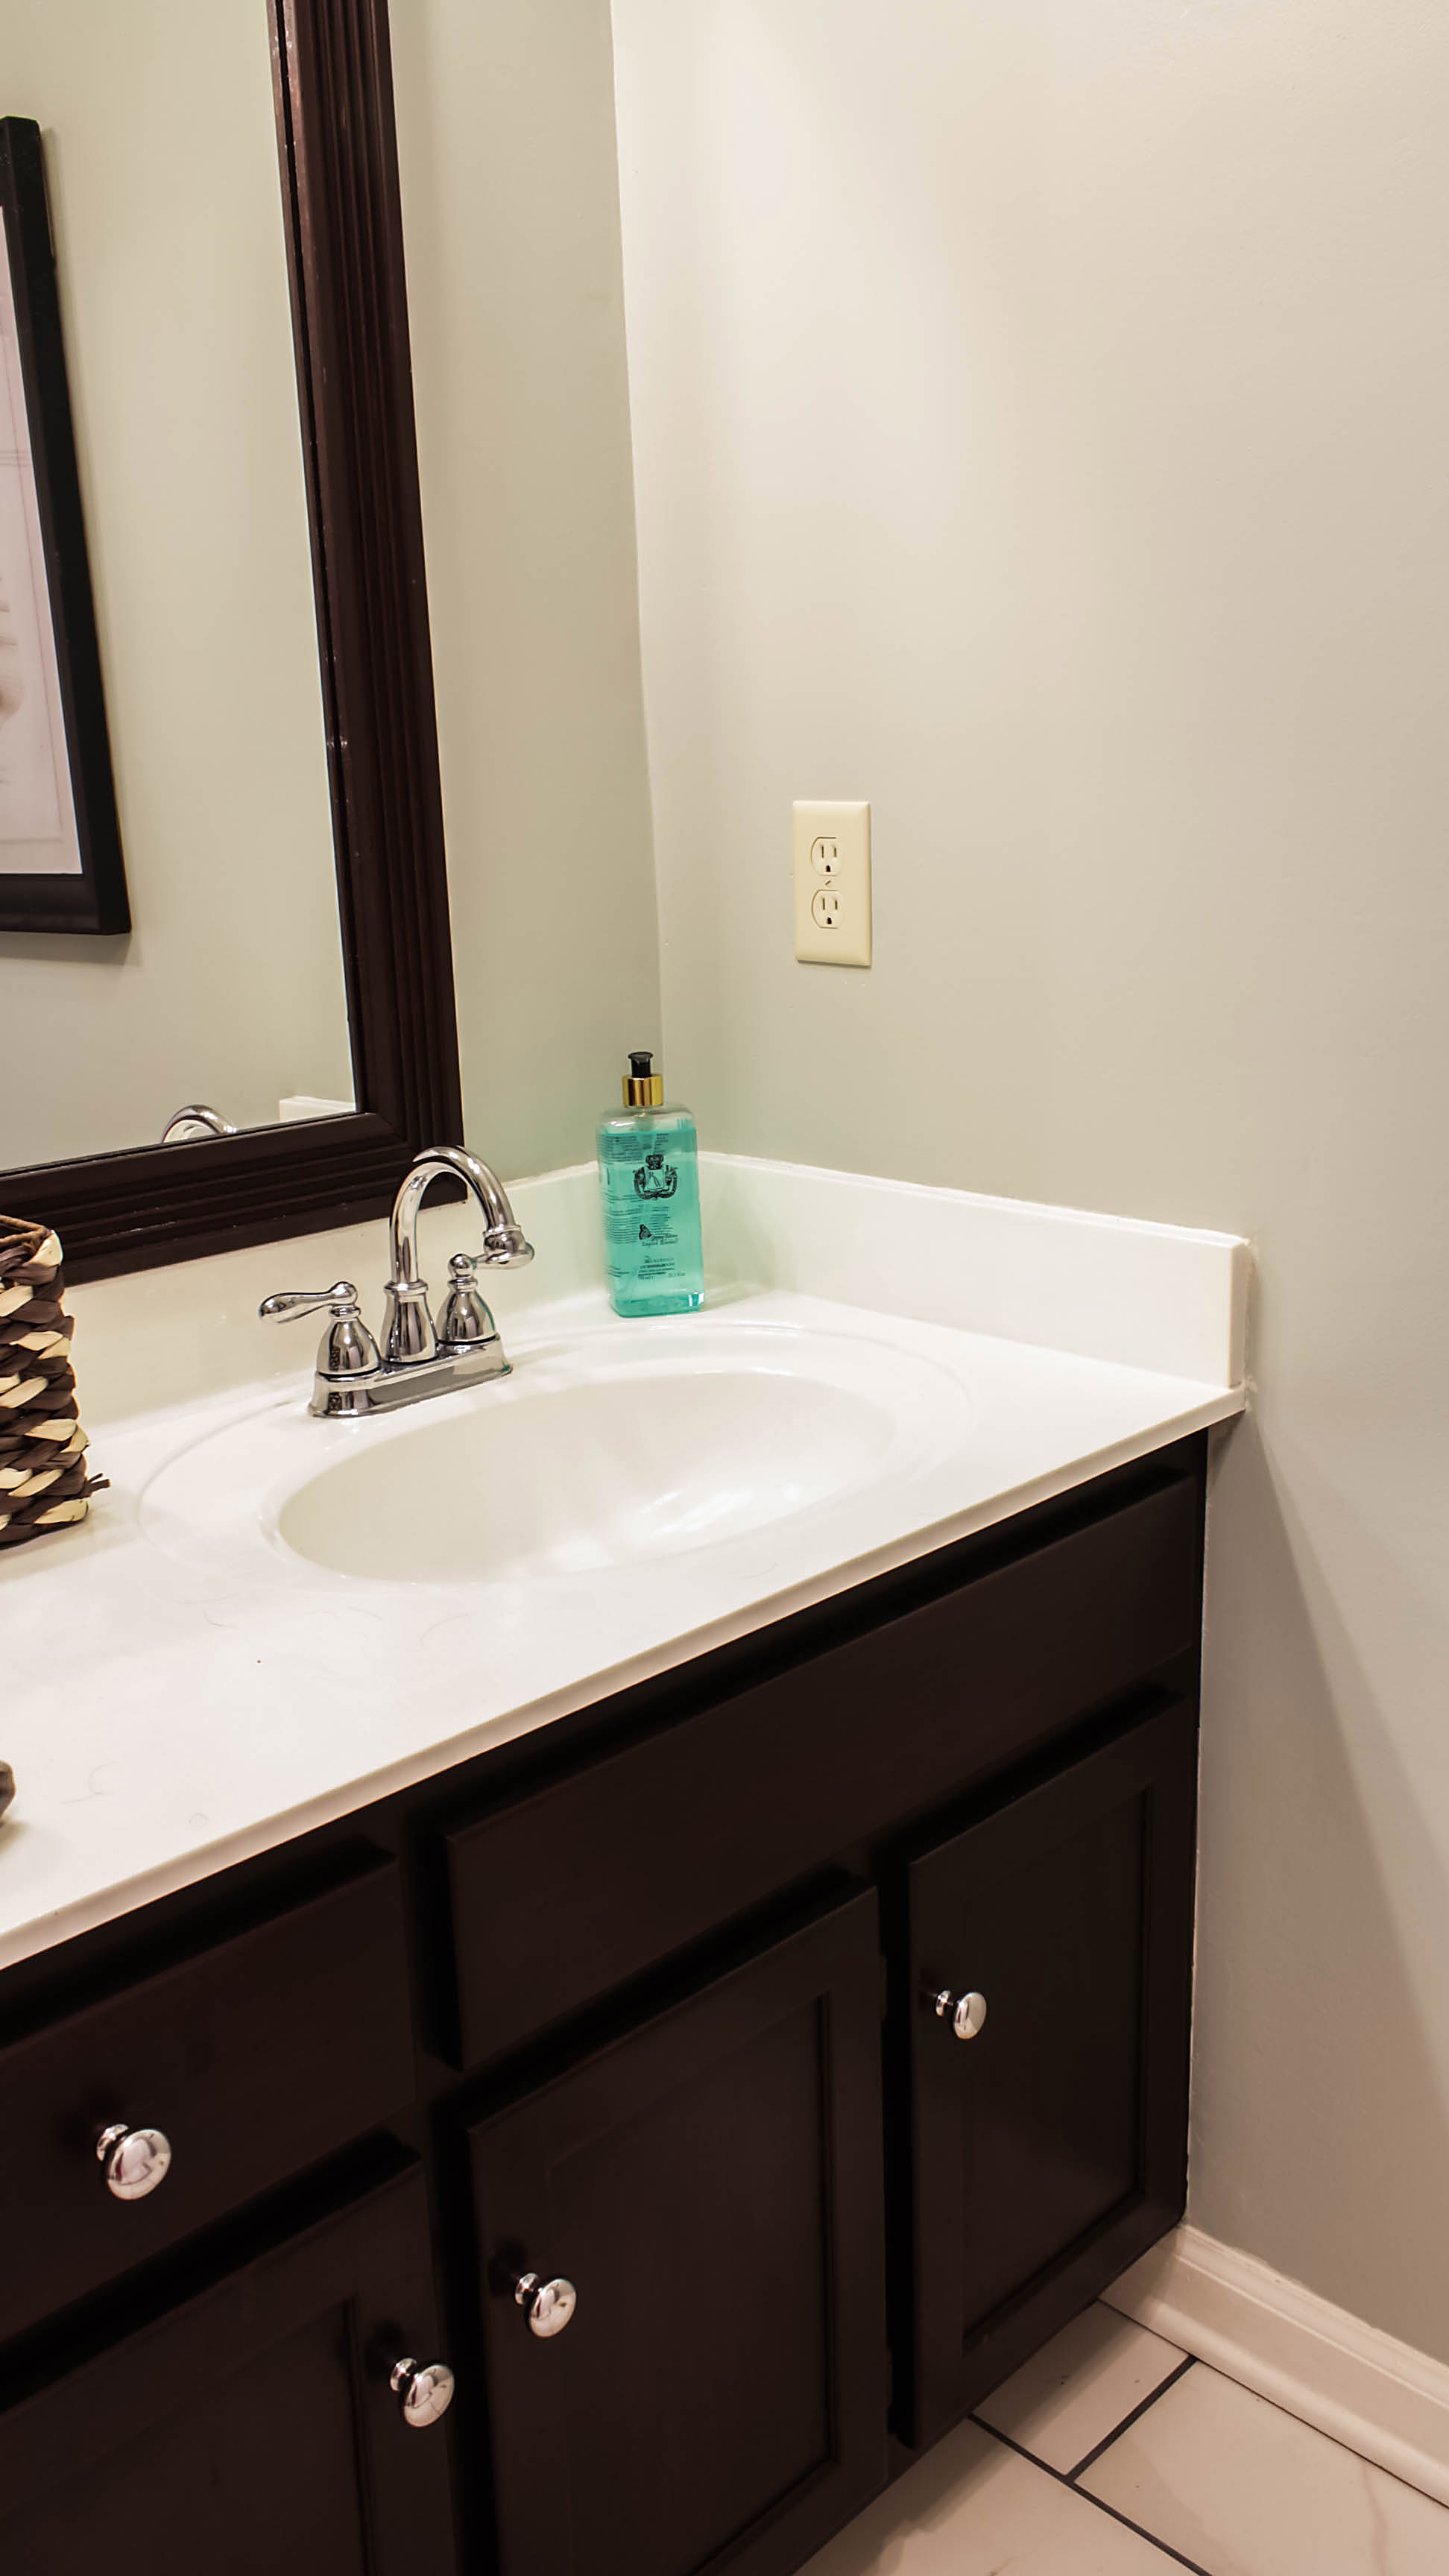 How To Remove Stains From Bathroom Countertops Transforming Bathroom Vanity With Gel Stain Java Gel Stain